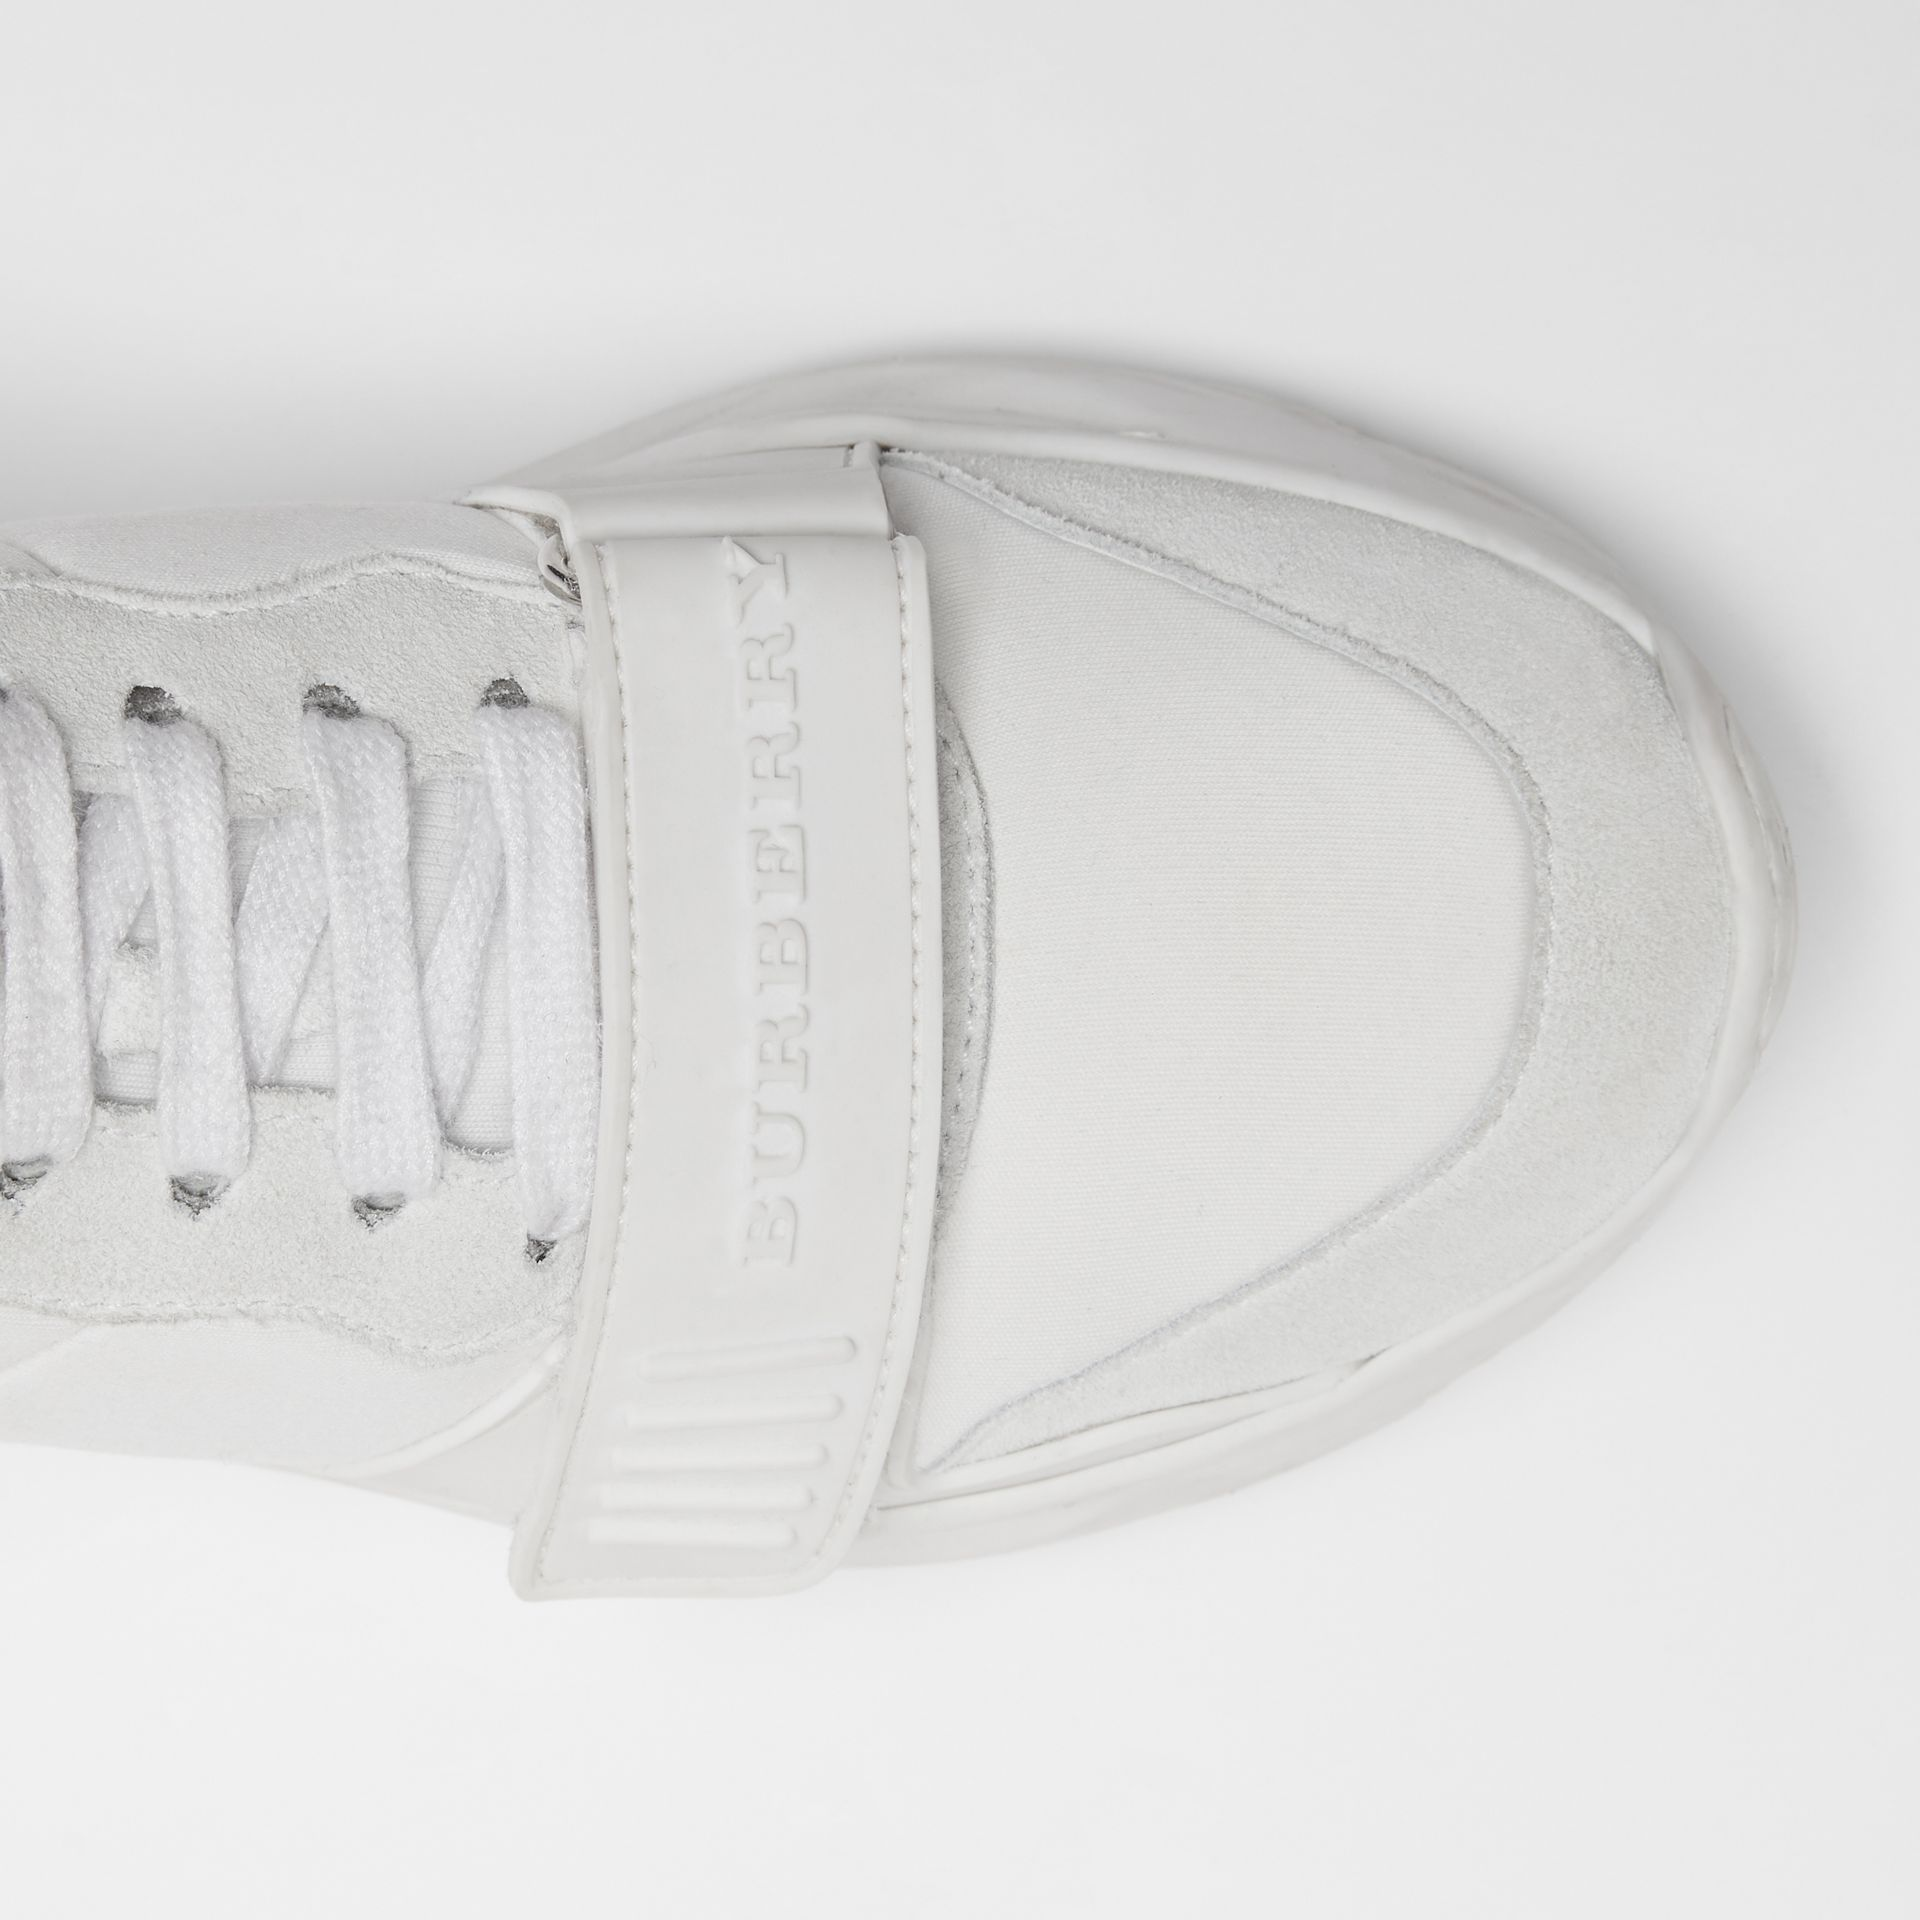 Suede, Neoprene and Leather Sneakers in Optic White - Women | Burberry United States - gallery image 1